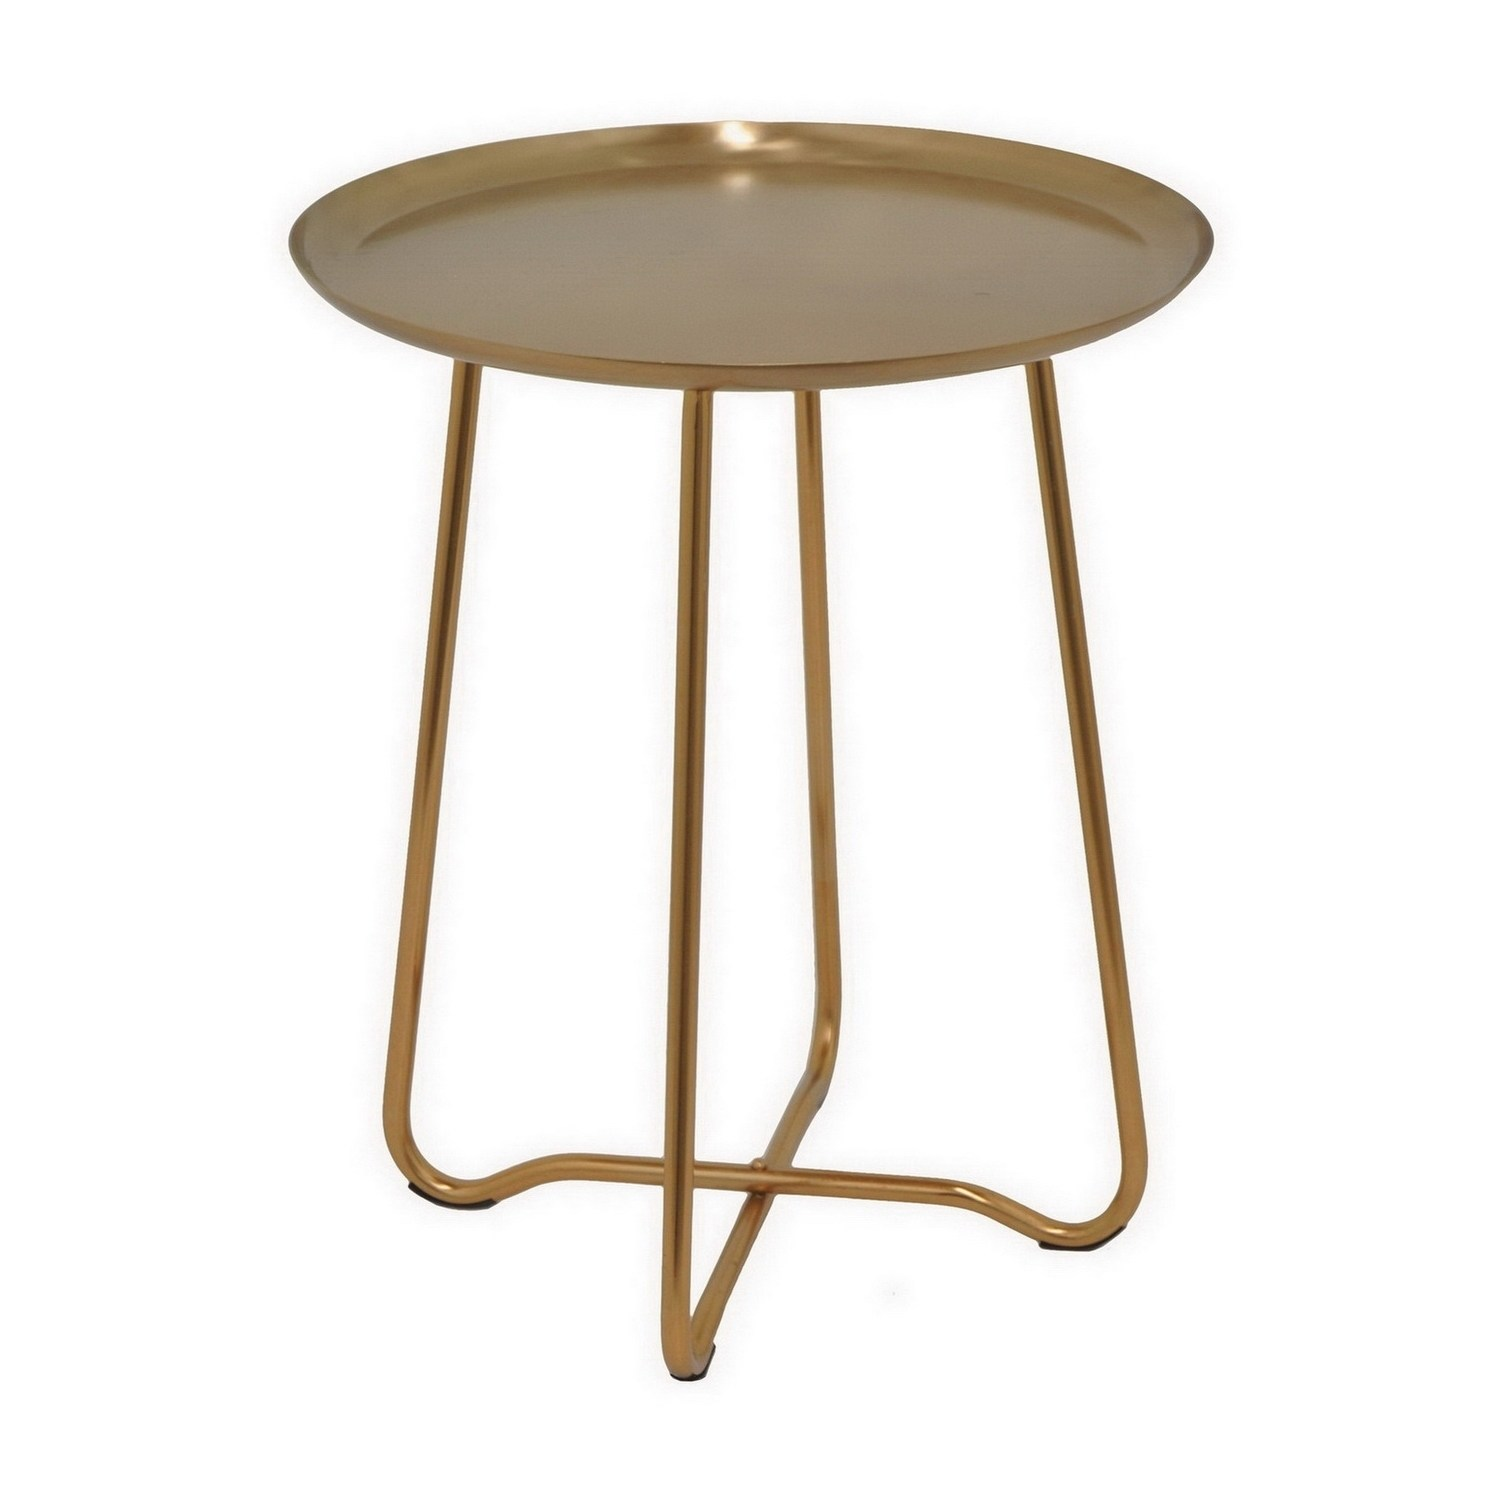 three hands round metal accent table bronze free shipping tables today living spaces dining and chairs mosaic garden bench high tops bar outdoor tea winchester furniture side for